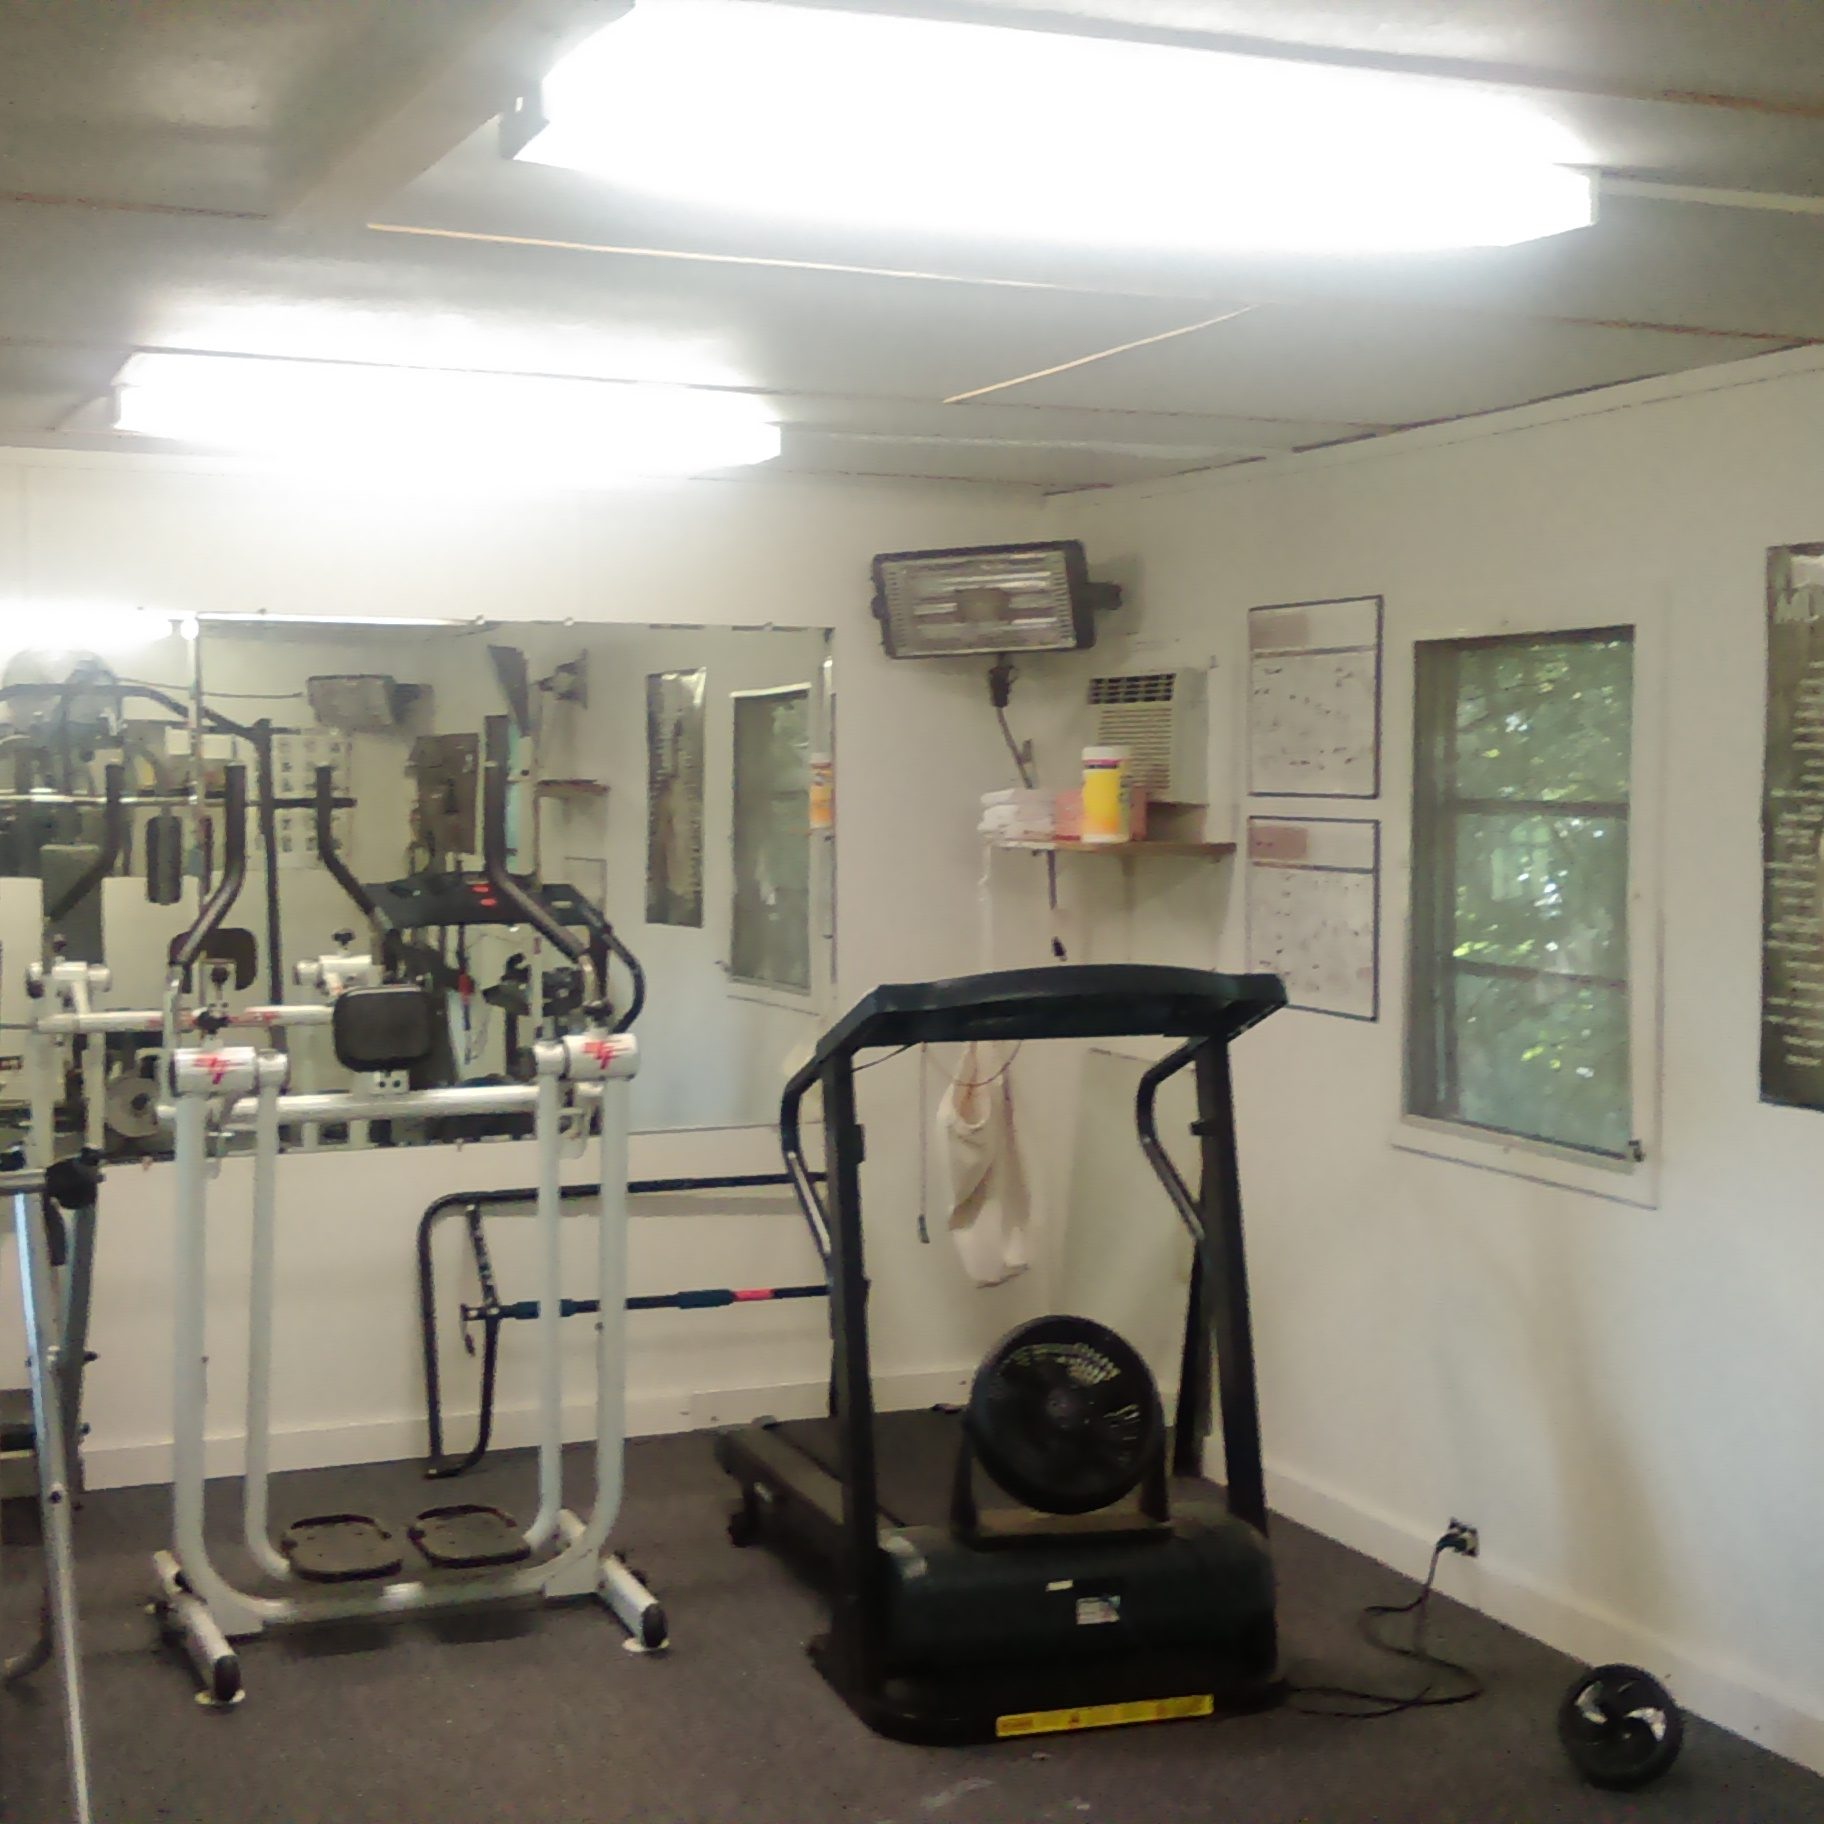 Exercise Room - Come pump it